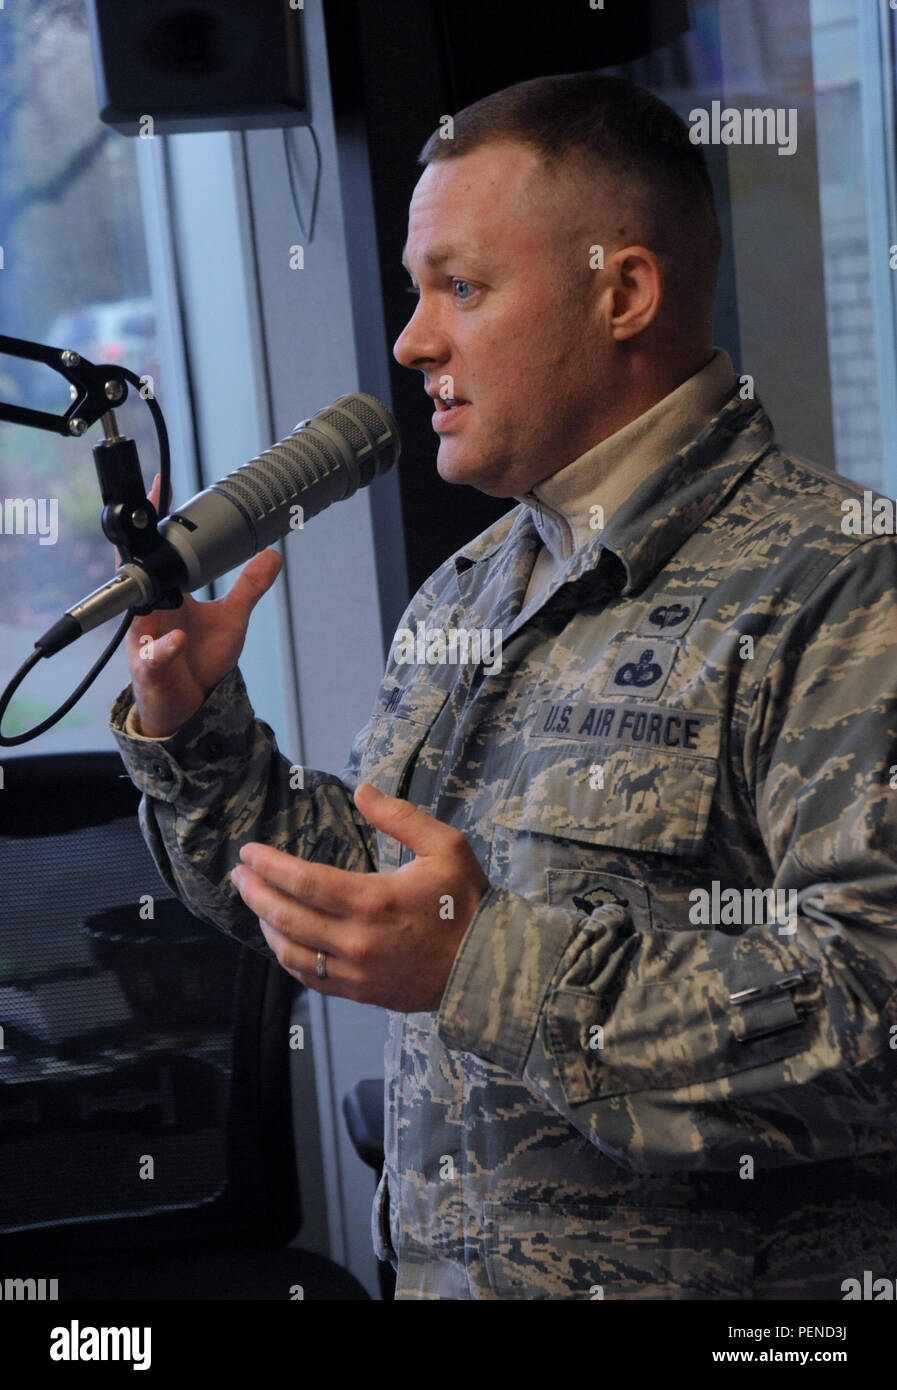 Oregon Master Sgt. Christopher Rich, assigned to the 142nd Fighter Wing Security Forces Squadron, talks on air with KPAM 860 host Bob Miller during his program, in Clackamas, Ore., Dec. 4, 2015, as part of Operation Santa Claus, an annual fundraiser, which assists local families coping with income loss due to military deployment. (U.S. Air Force photo by Tech. Sgt. John Hughel, 142nd Fighter Wing Public Affairs) - Stock Image